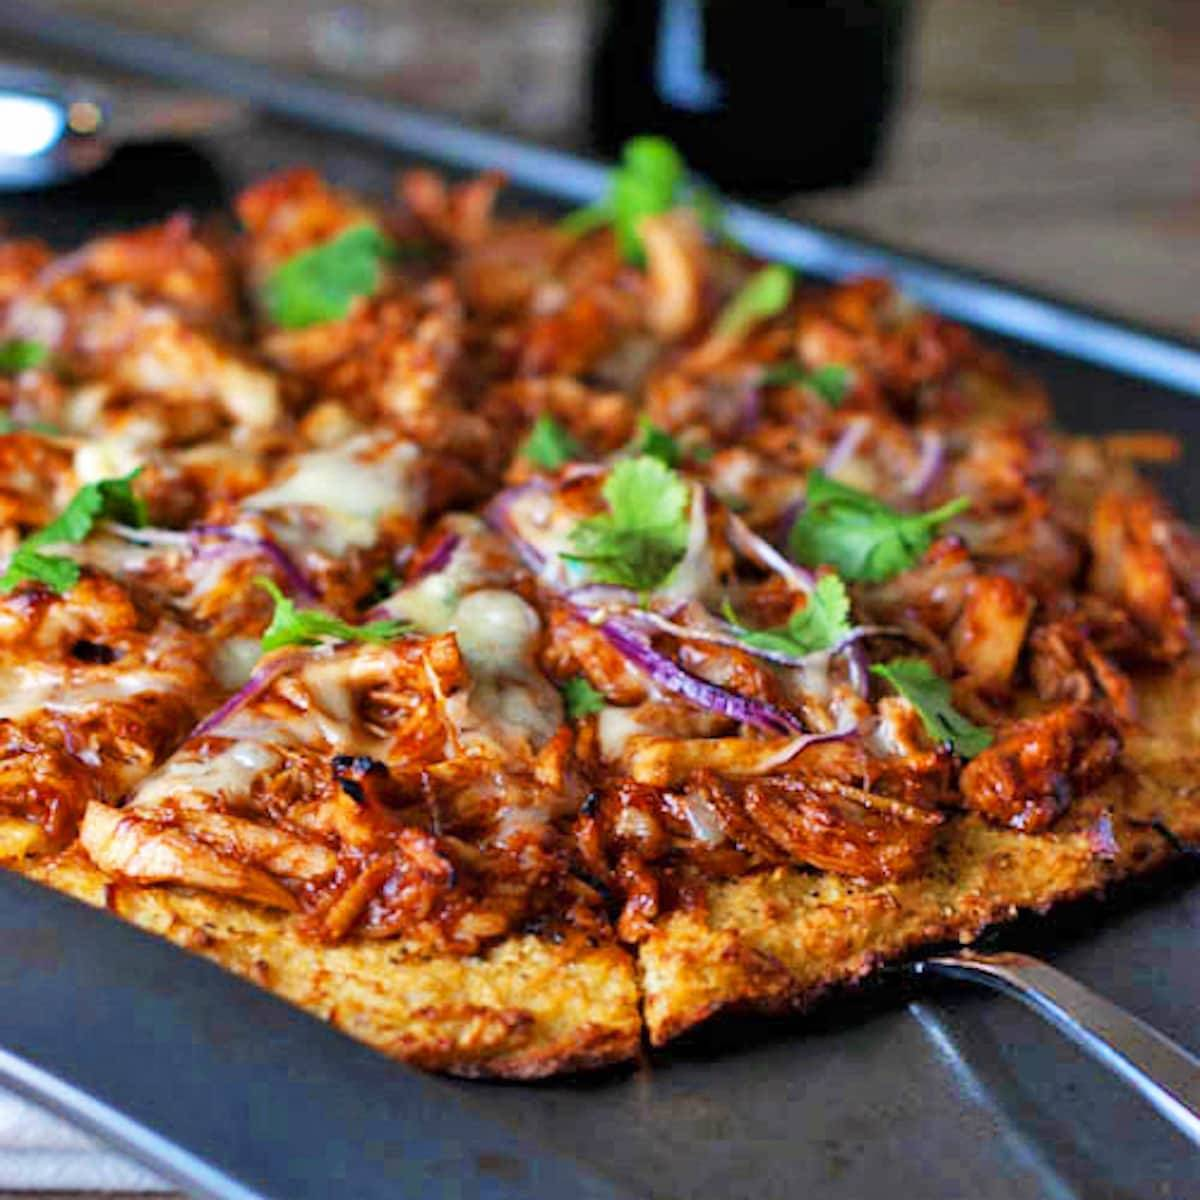 This light BBQ chicken pizza has just 150 calories per slice thanks to a cauliflower pizza crust. Healthy, colorful, and full of BBQ flavor! | pinchofyum.com